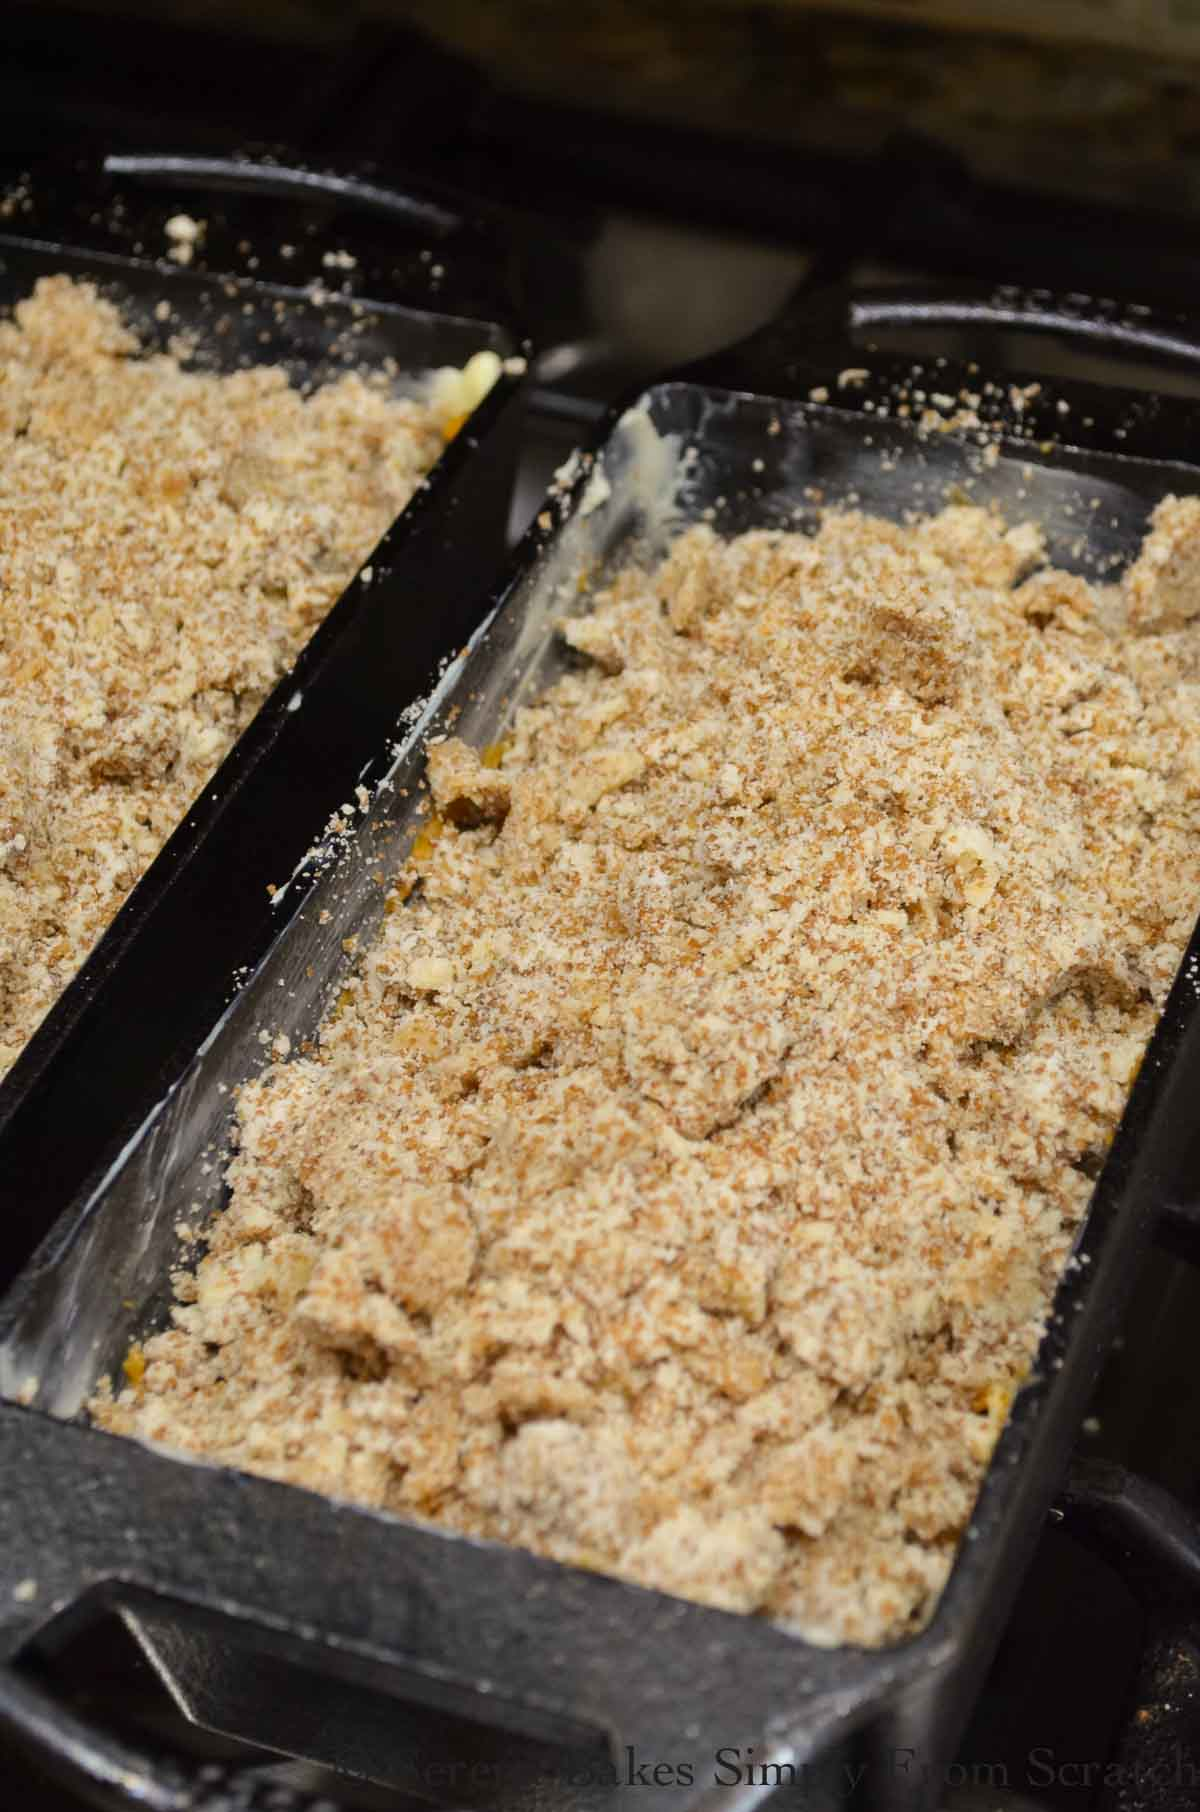 Streusel topping over the top of Pumpkin Bread batter.